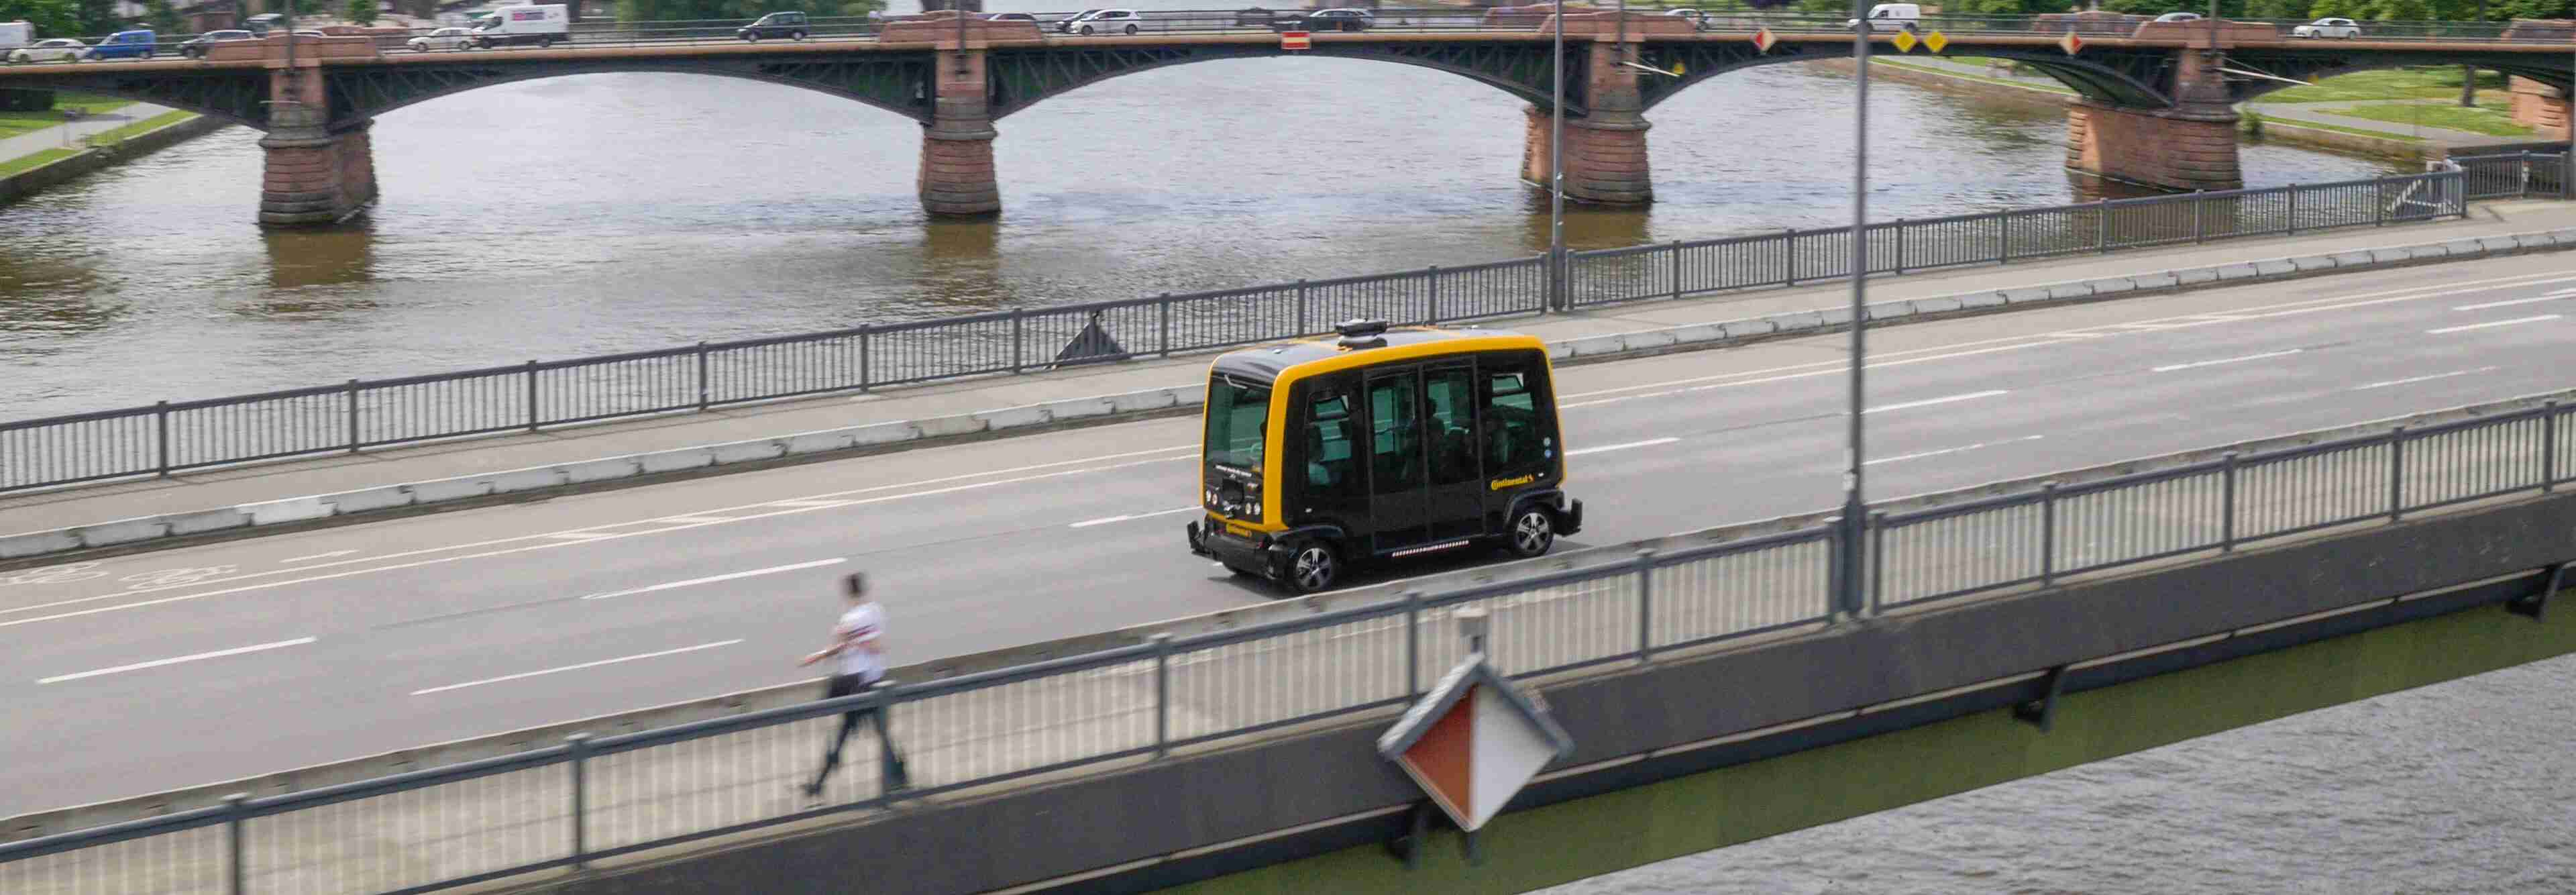 Shuttles to Account for 50% of Global Shared Mobility Market by 2030